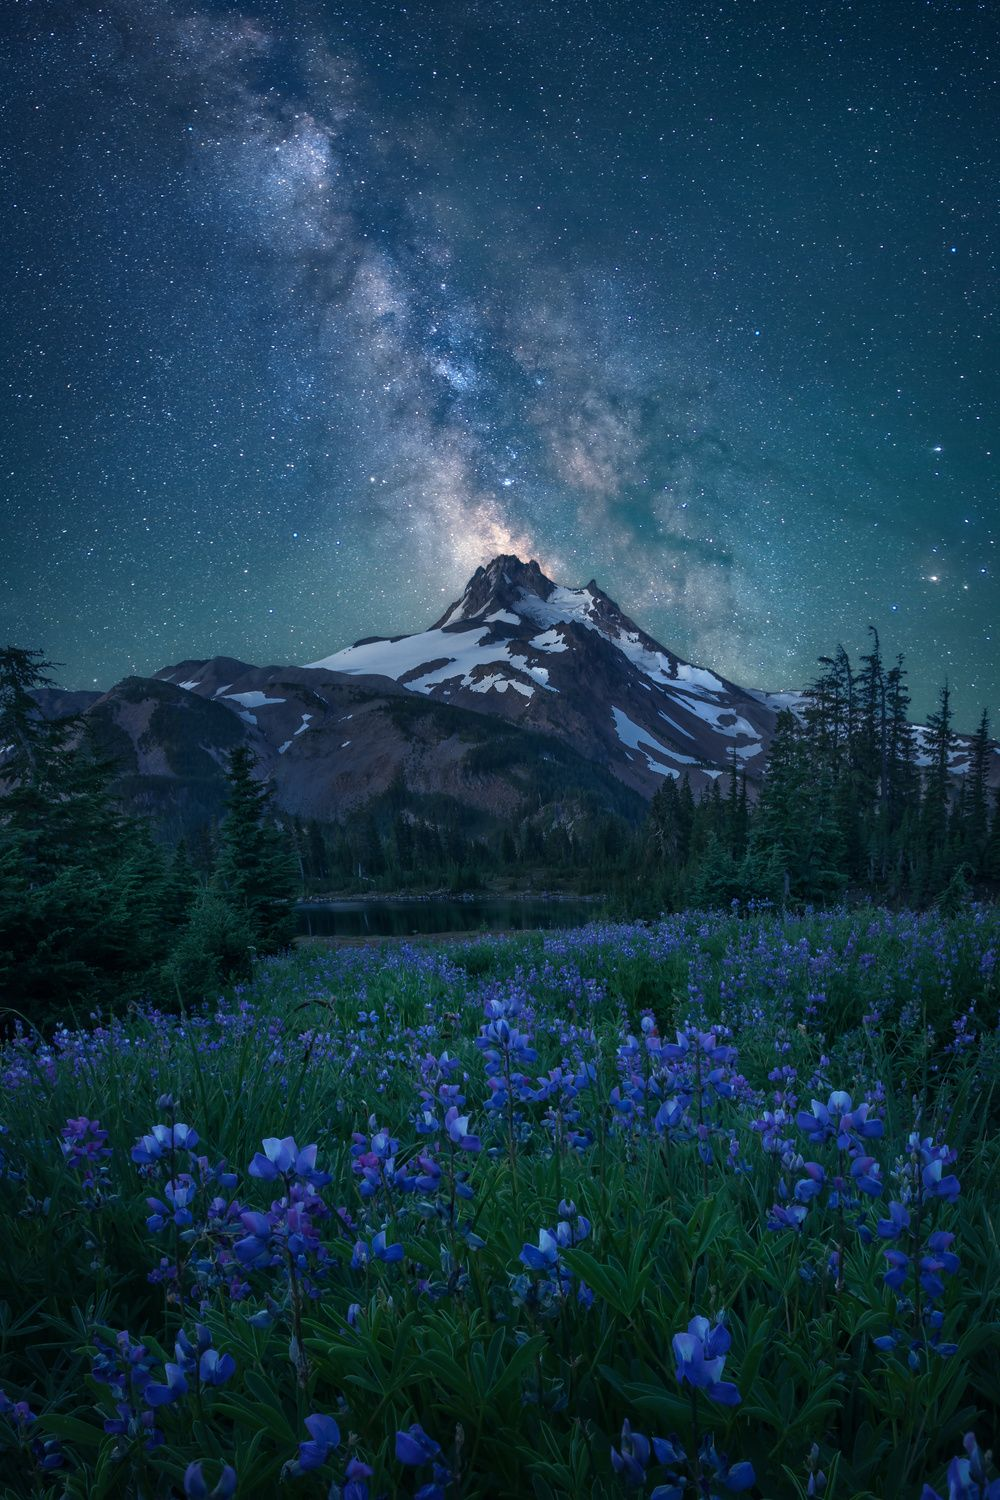 1x.com is the world's biggest curated photo gallery online. Each photo is selected by professional curators. Milky Way Above Mt. Jefferson by Steve Schwindt